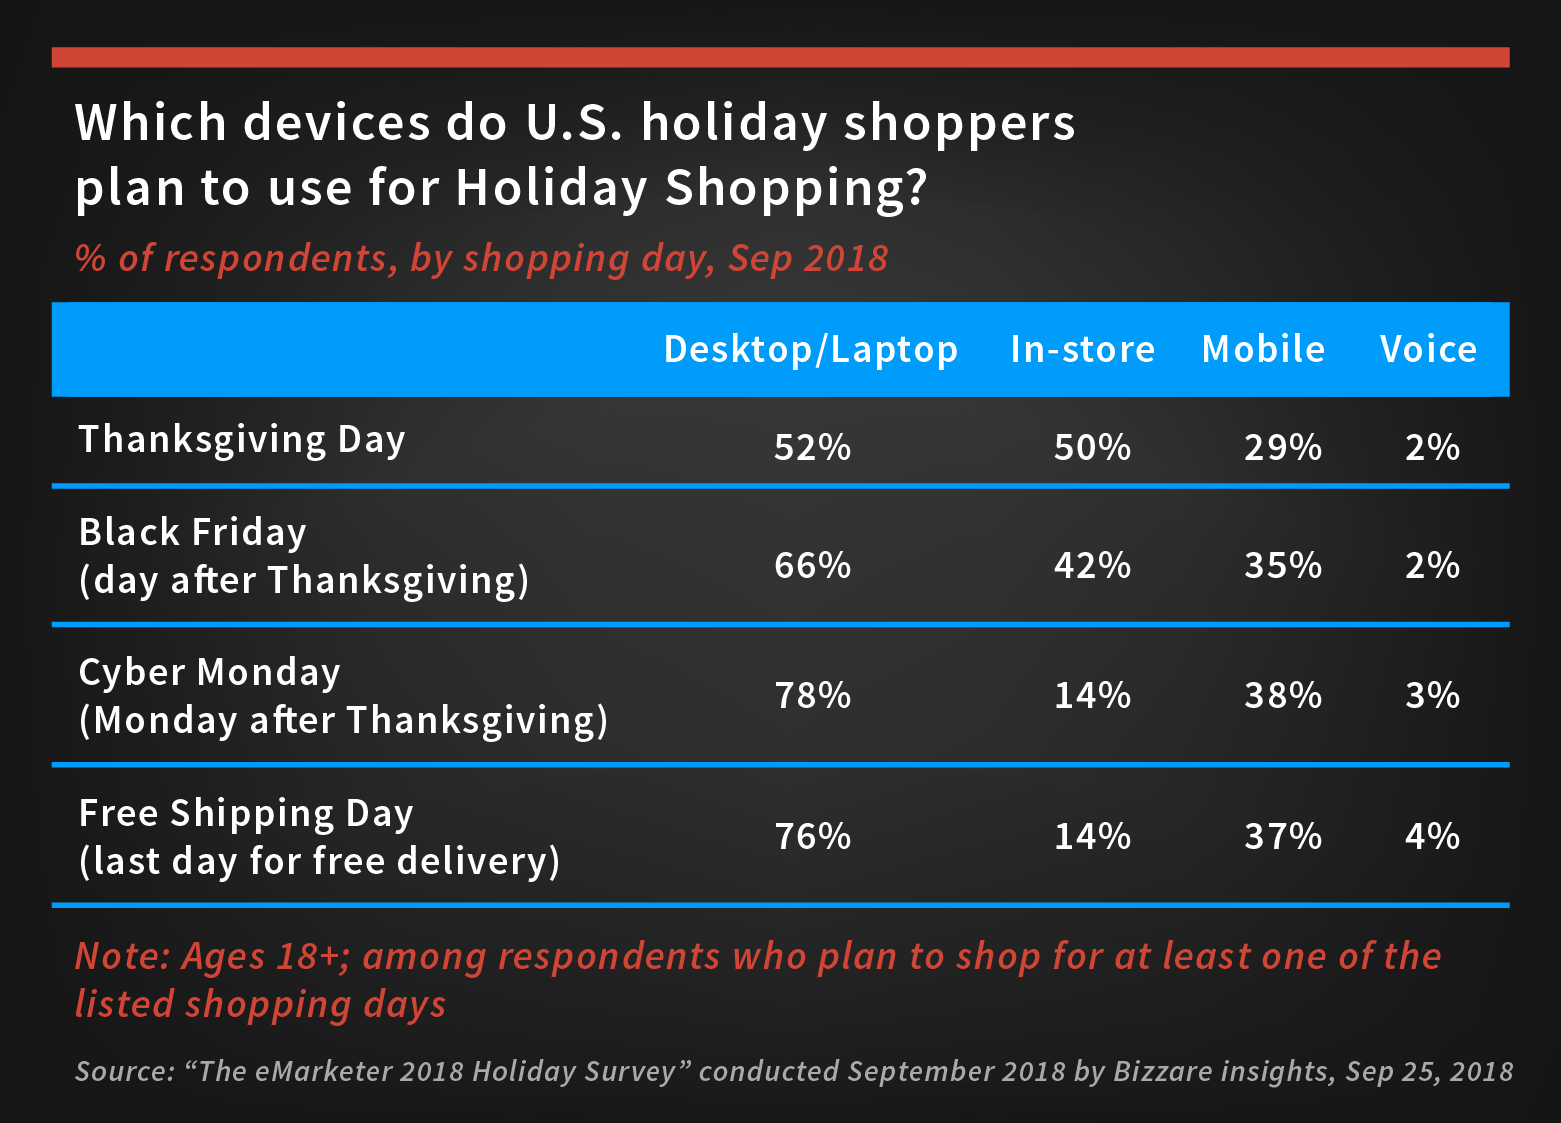 US holiday shoppers prefer multiple channels for holiday shopping